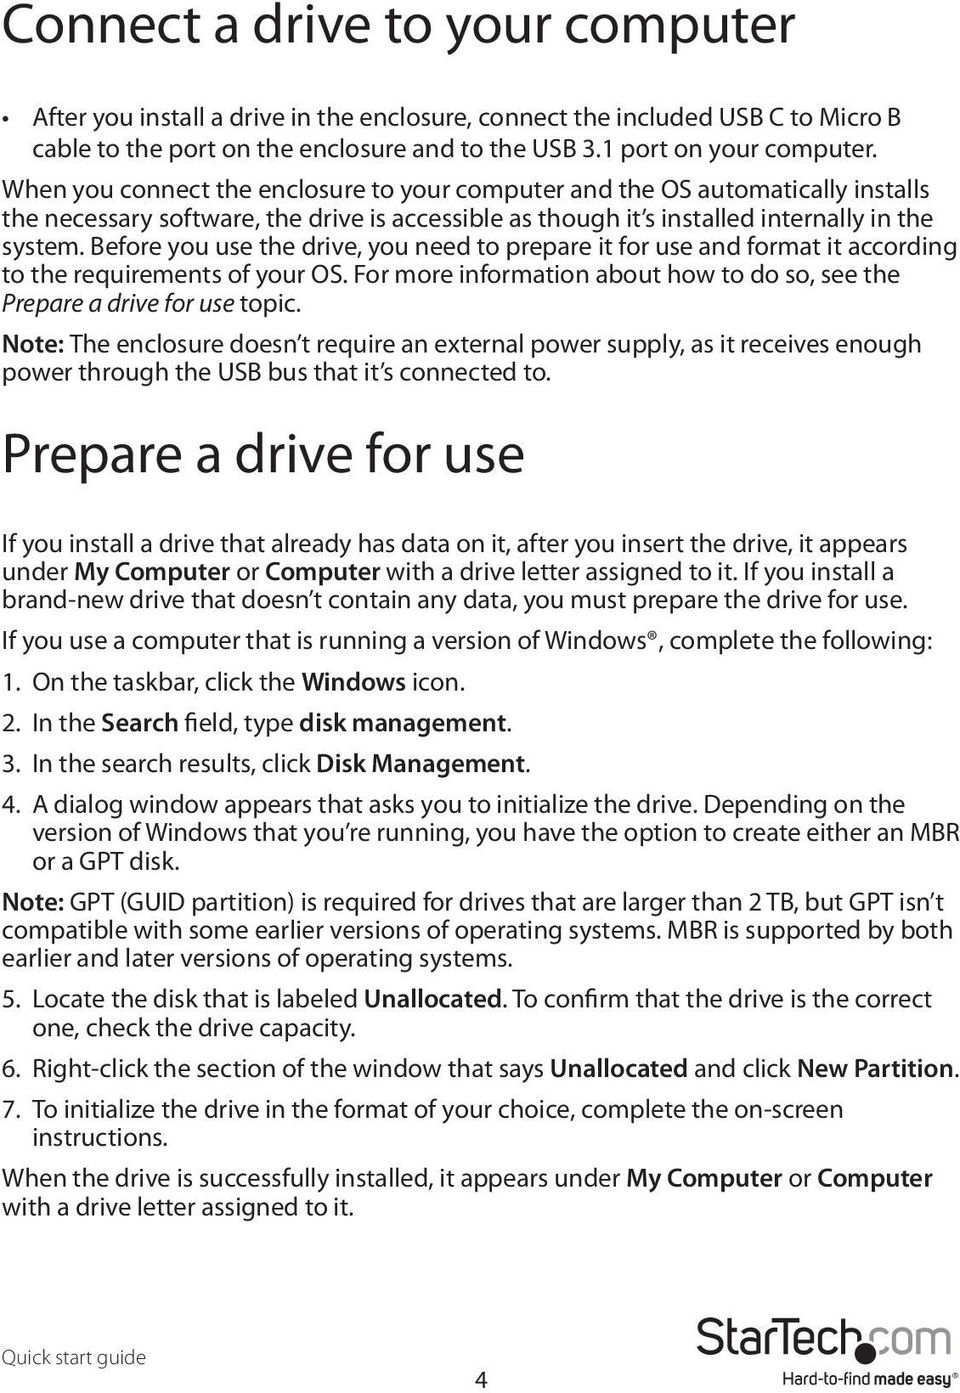 Before you use the drive, you need to prepare it for use and format it according to the requirements of your OS. For more information about how to do so, see the Prepare a drive for use topic.